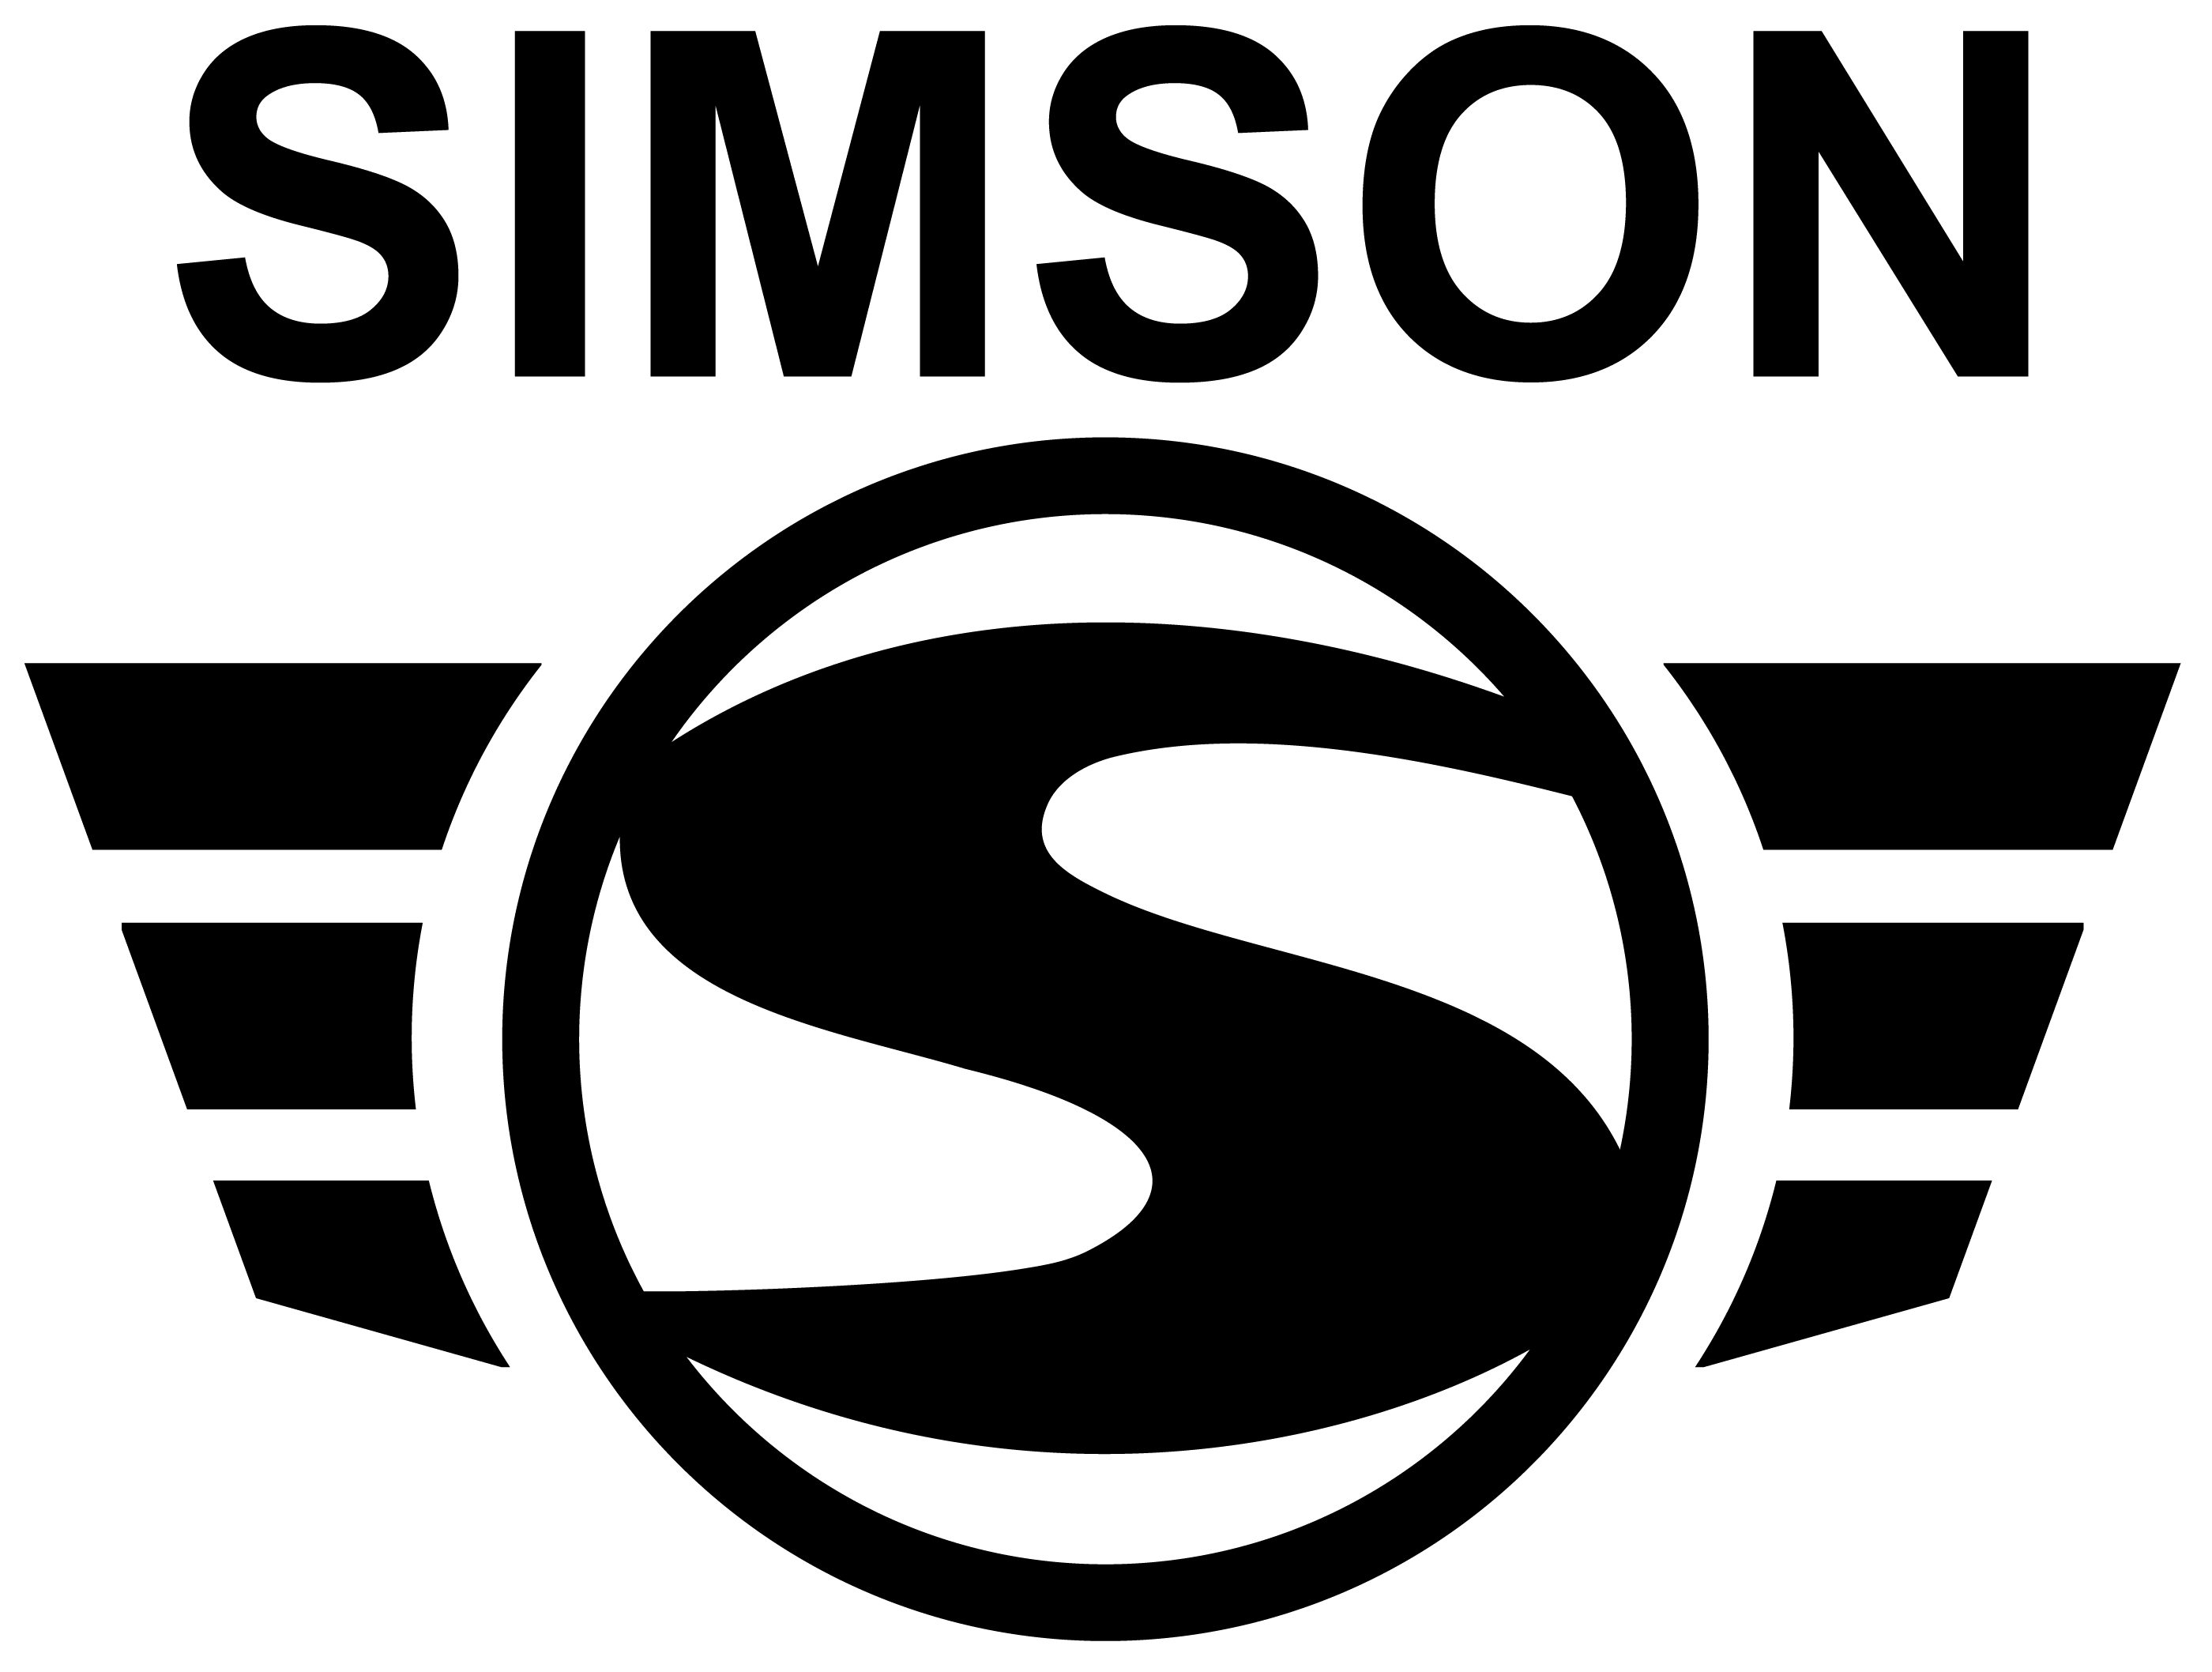 simson logo motorcycle brands free motorcycle vector illustration victory motorcycle